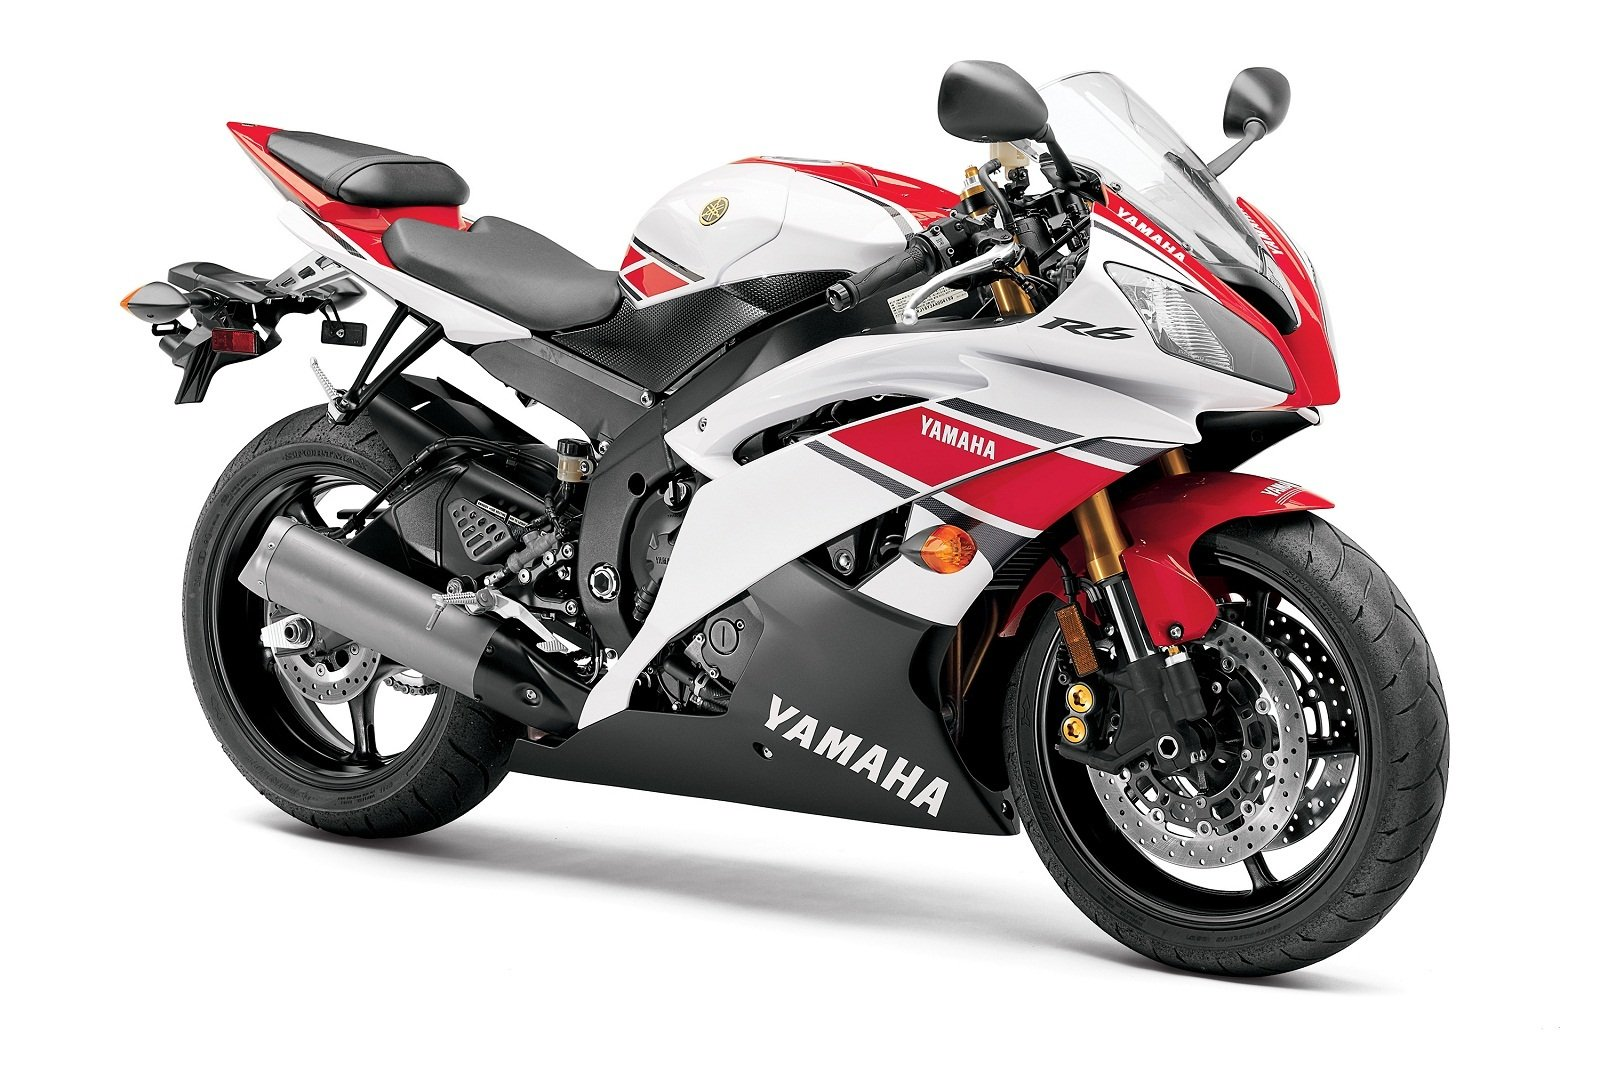 2012 yamaha yzf r6 picture 418784 motorcycle review top speed. Black Bedroom Furniture Sets. Home Design Ideas